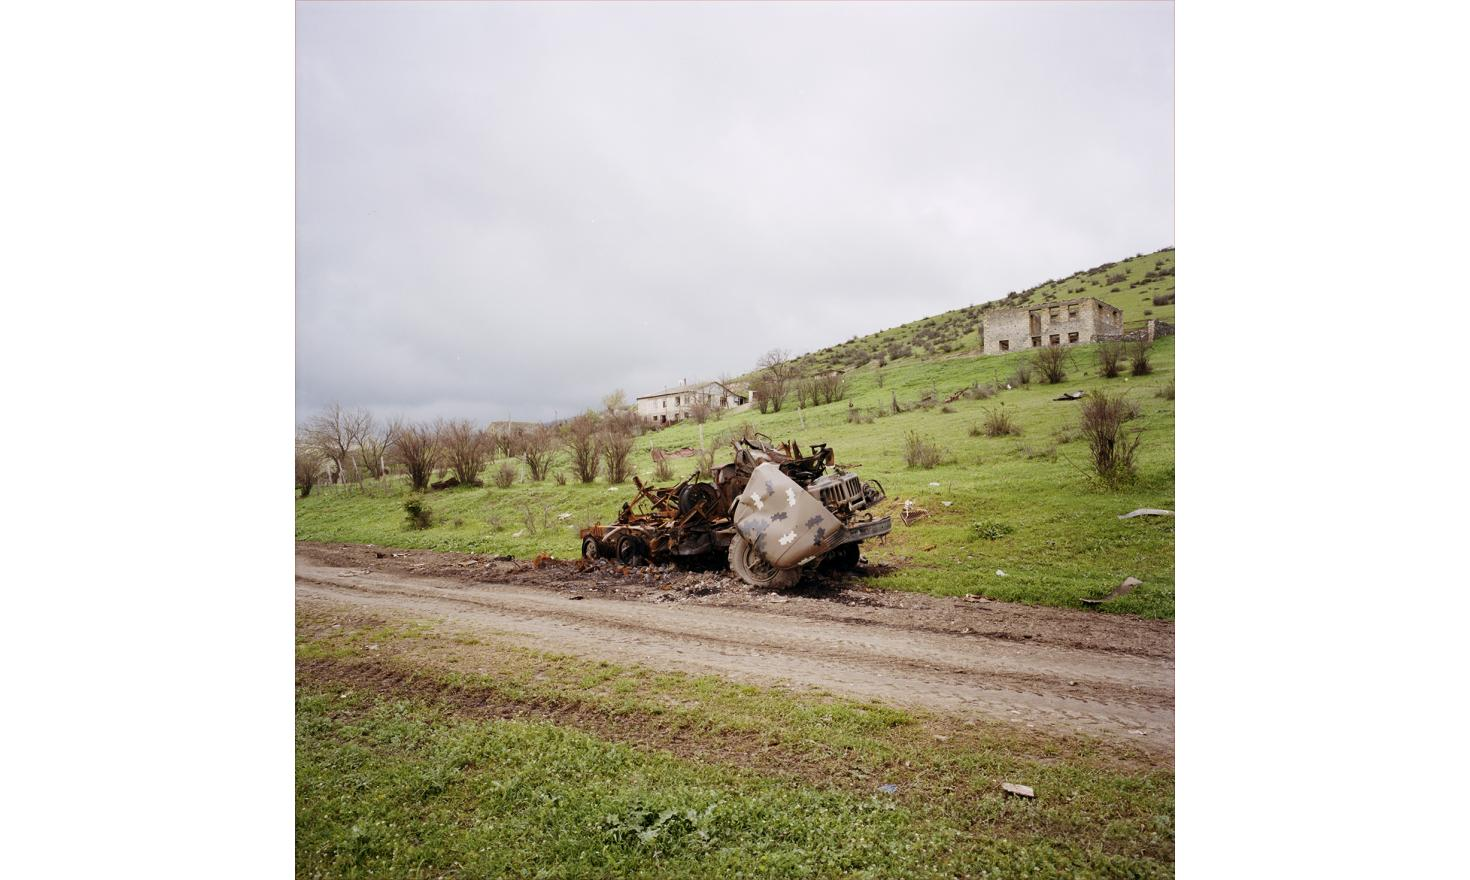 A destroyed military vehicle in Talish